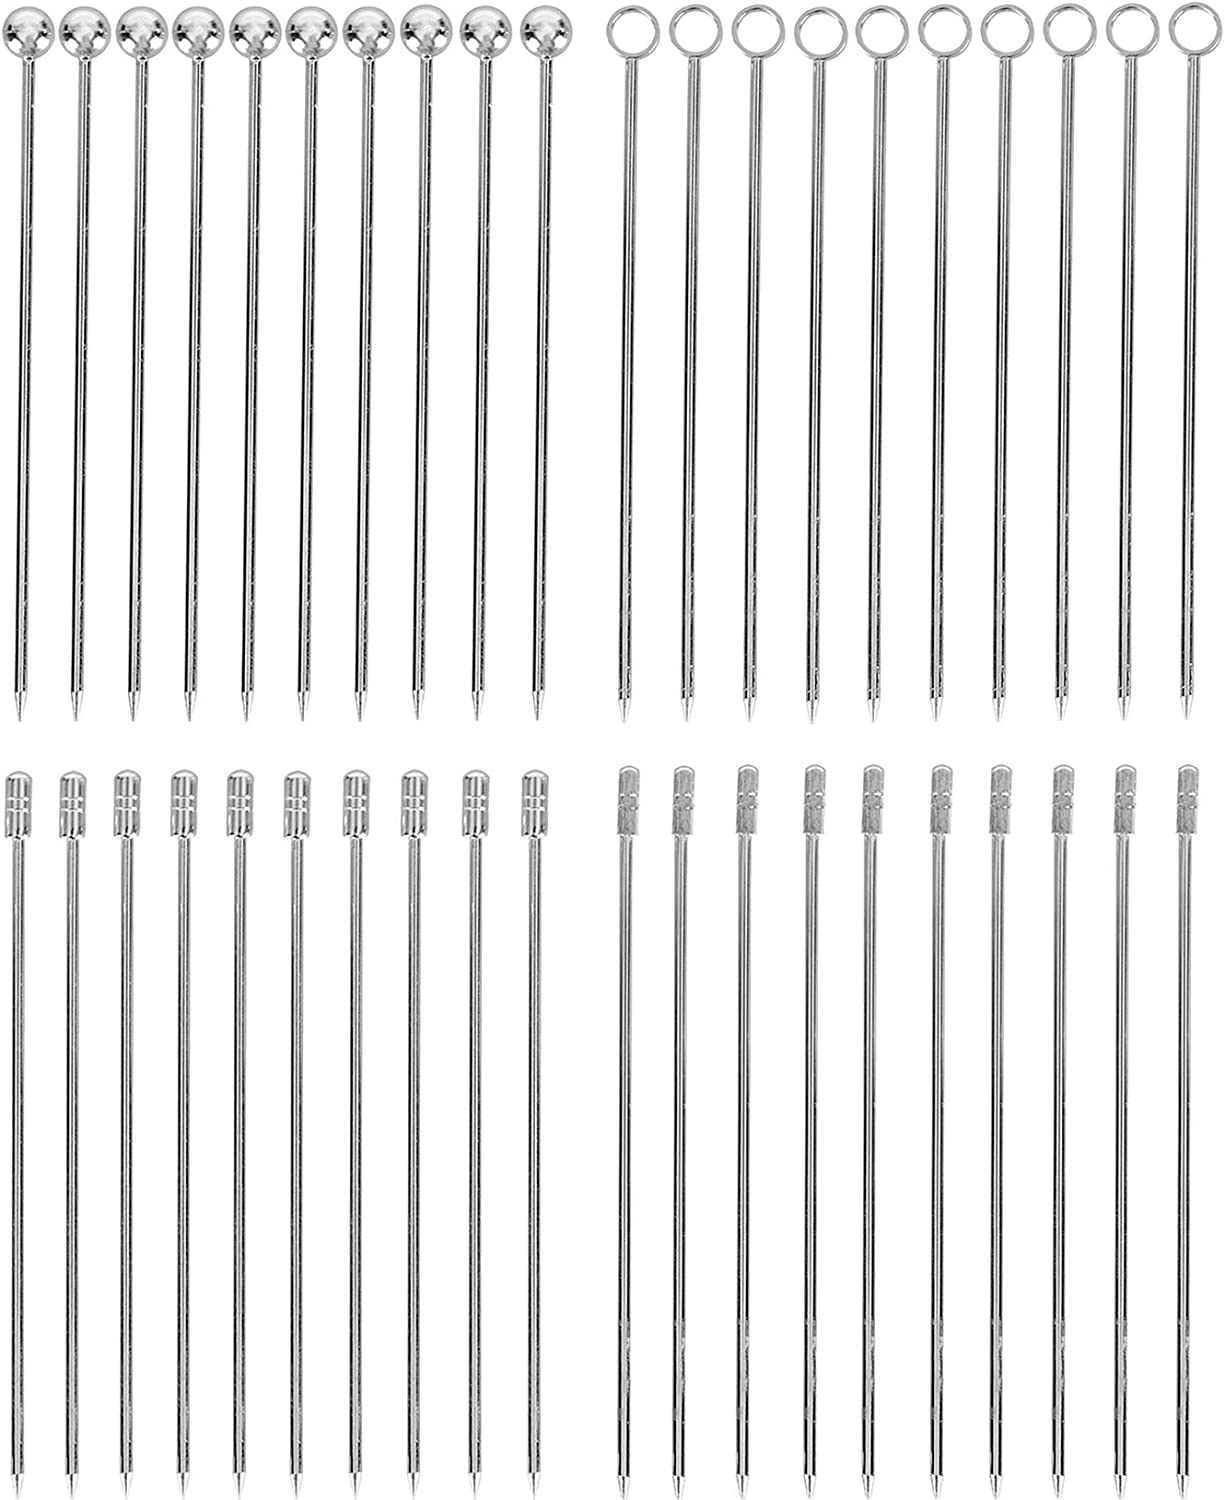 Yesland 40 Pcs Stainless Steel Cocktail Picks, 4-1/4 Inches Martini Picks Set & Reusable Fruit Toothpicks for Cocktail Garnishes and Food